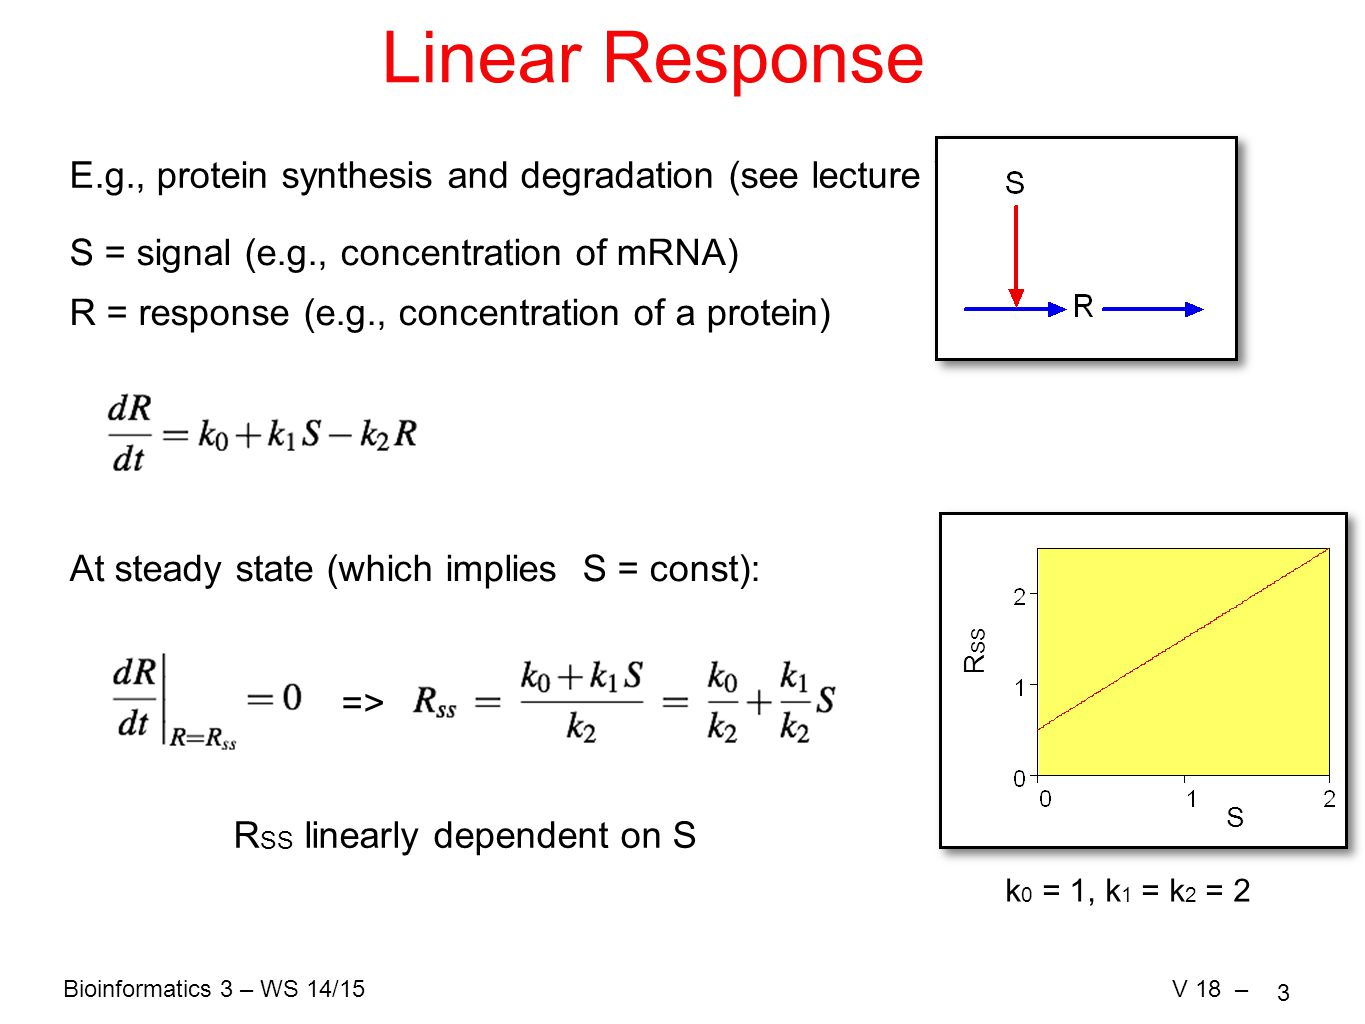 Bioinformatics 3 – WS 14/15V 18 – 3 Linear Response E.g., protein synthesis and degradation (see lecture V8) S = signal (e.g., concentration of mRNA) R = response (e.g., concentration of a protein) At steady state (which implies S = const): => S R SS R SS linearly dependent on S k 0 = 1, k 1 = k 2 = 2